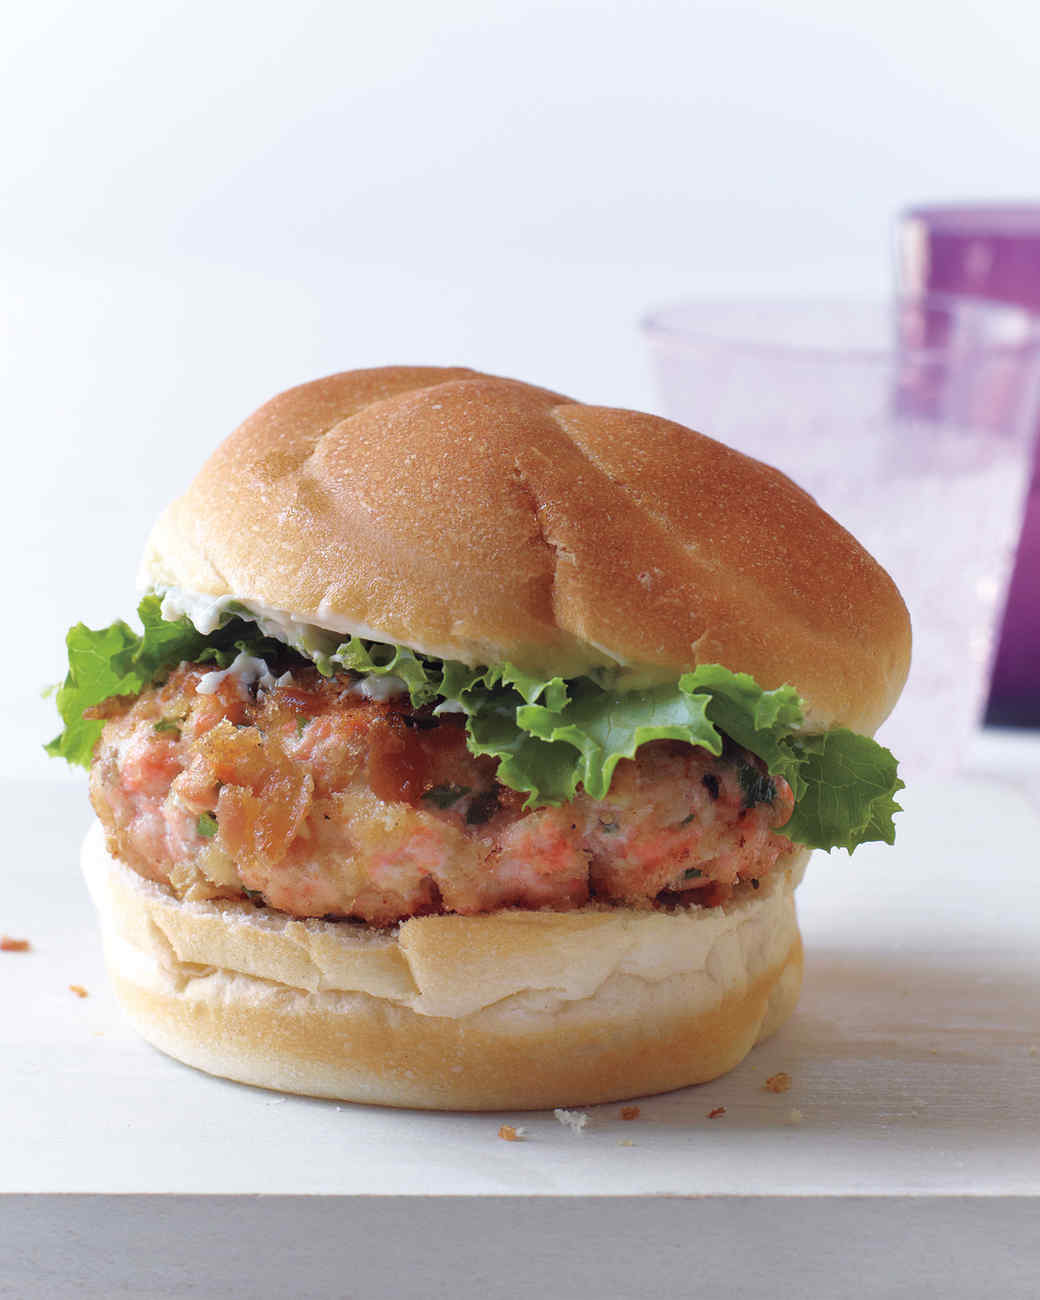 edf-loves-salmon-burgers-032-med109000.jpg